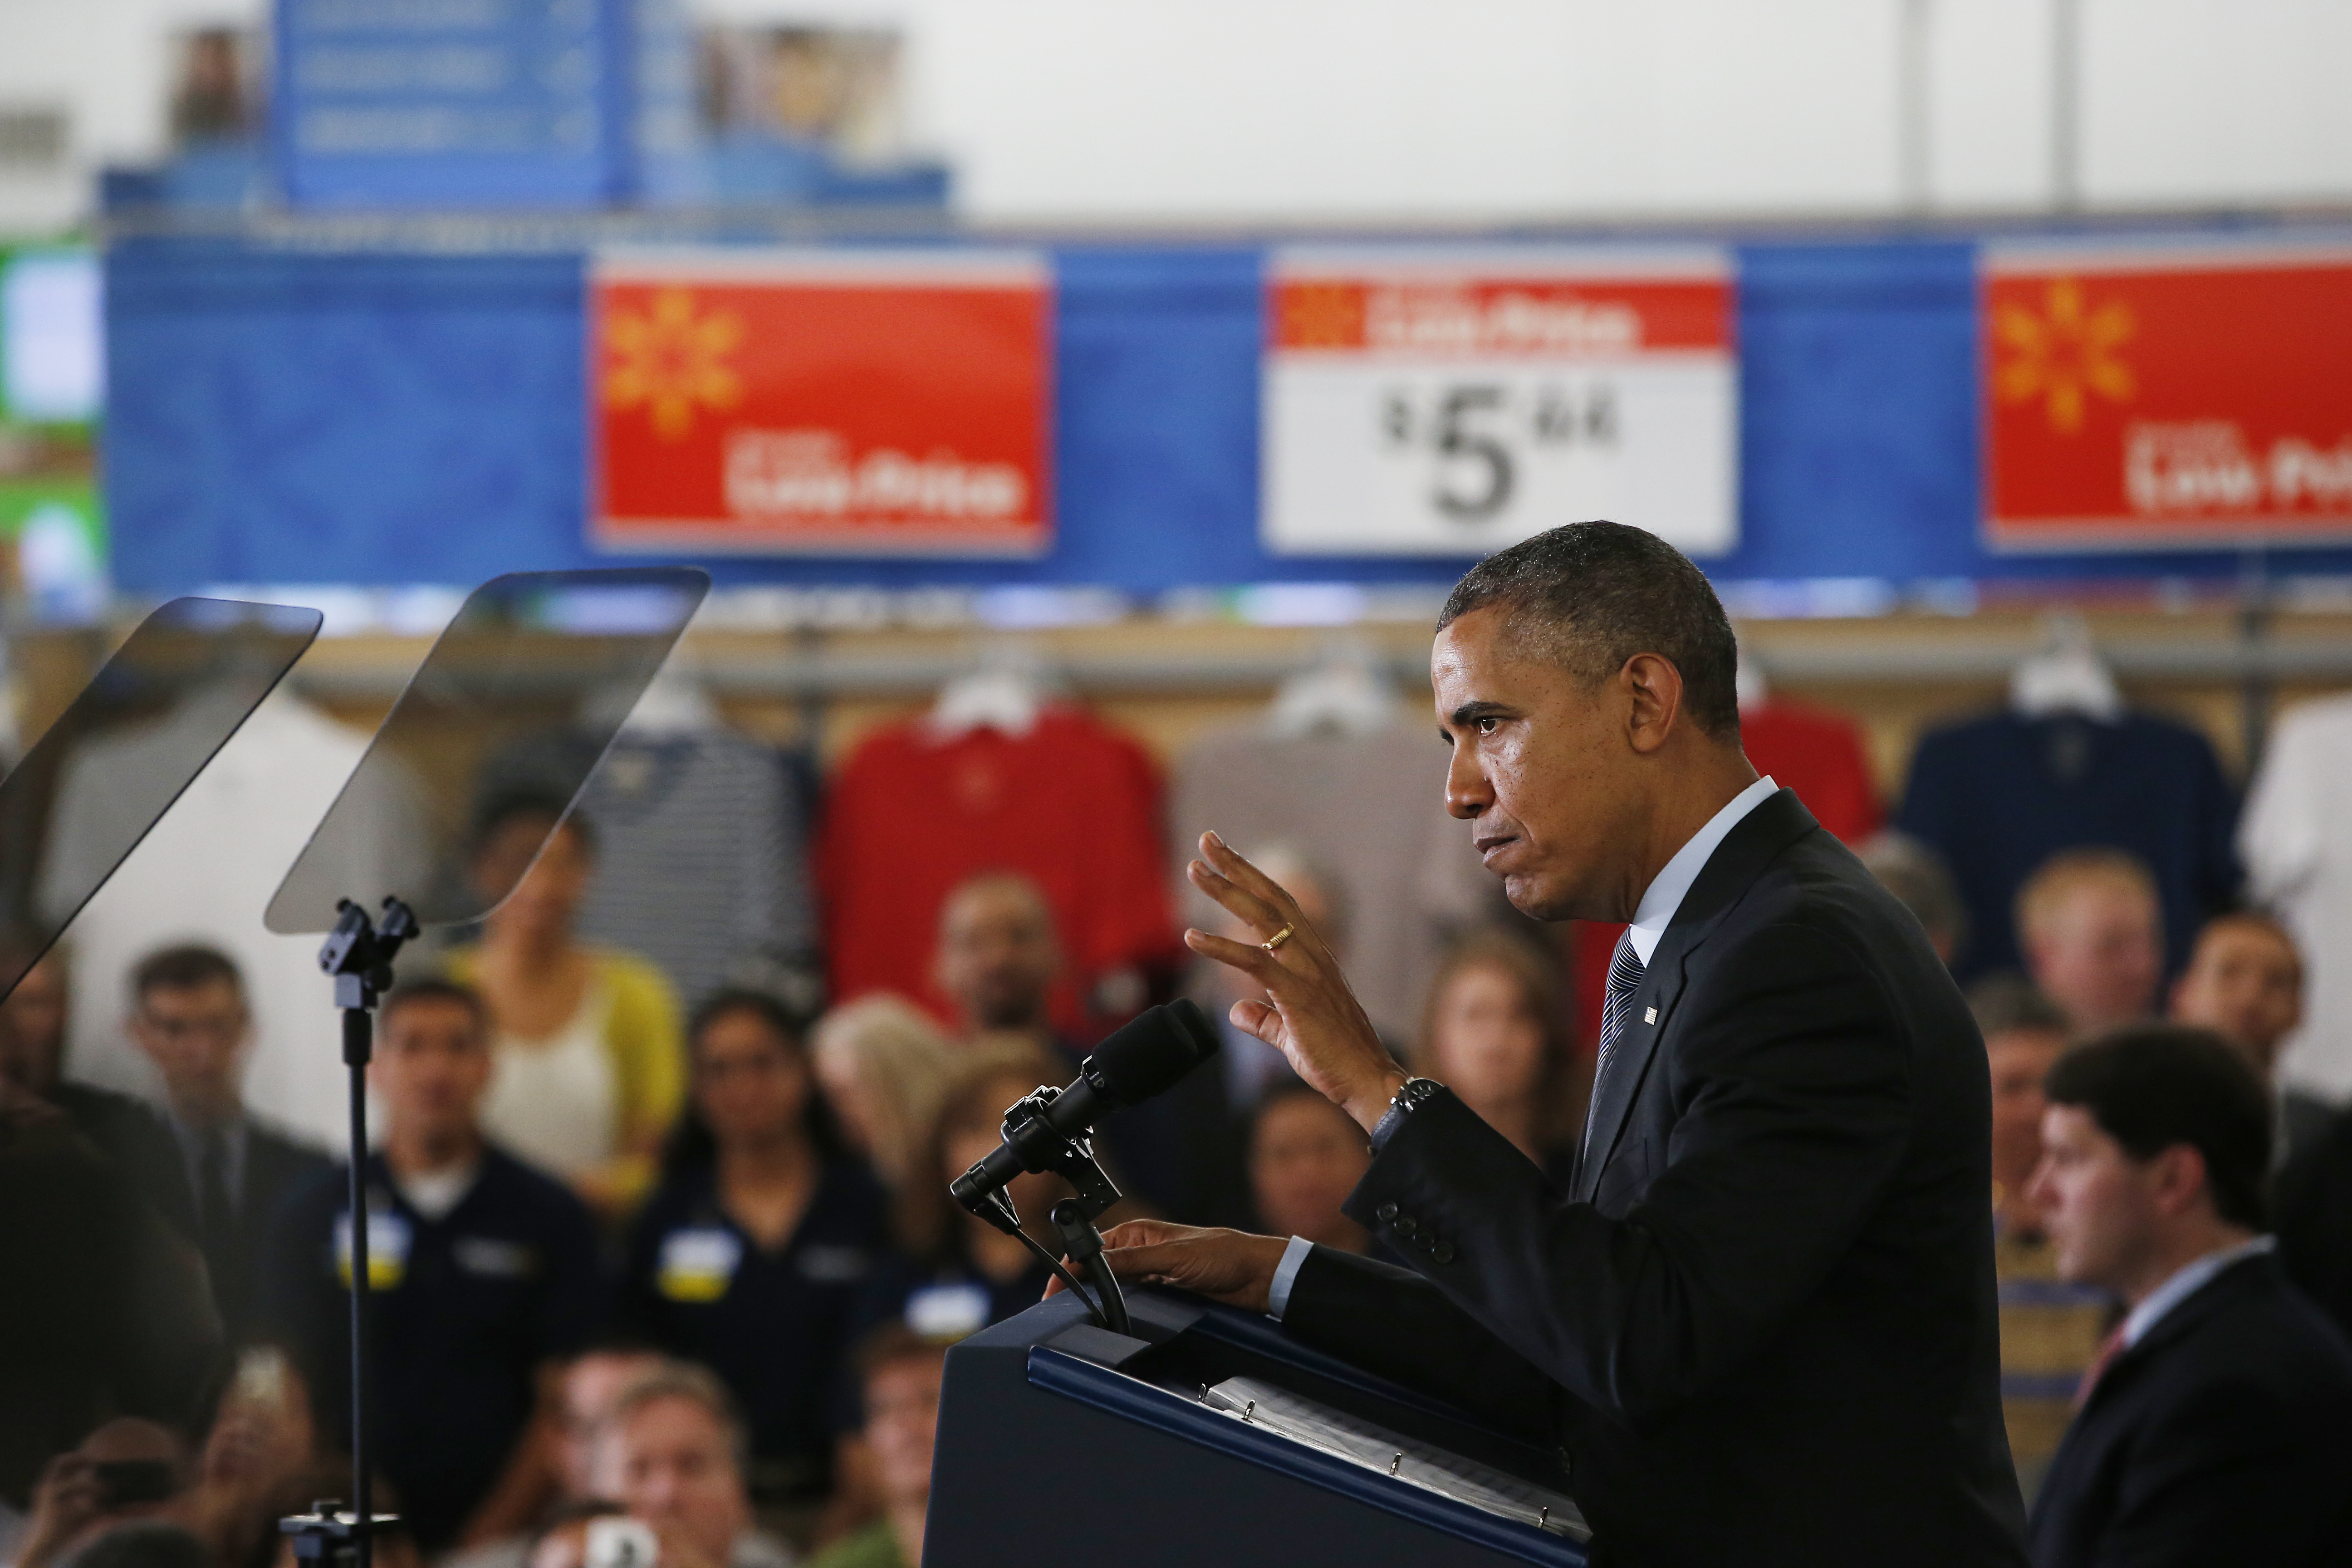 President Obama at Wal-Mart to Talk About Solar Power